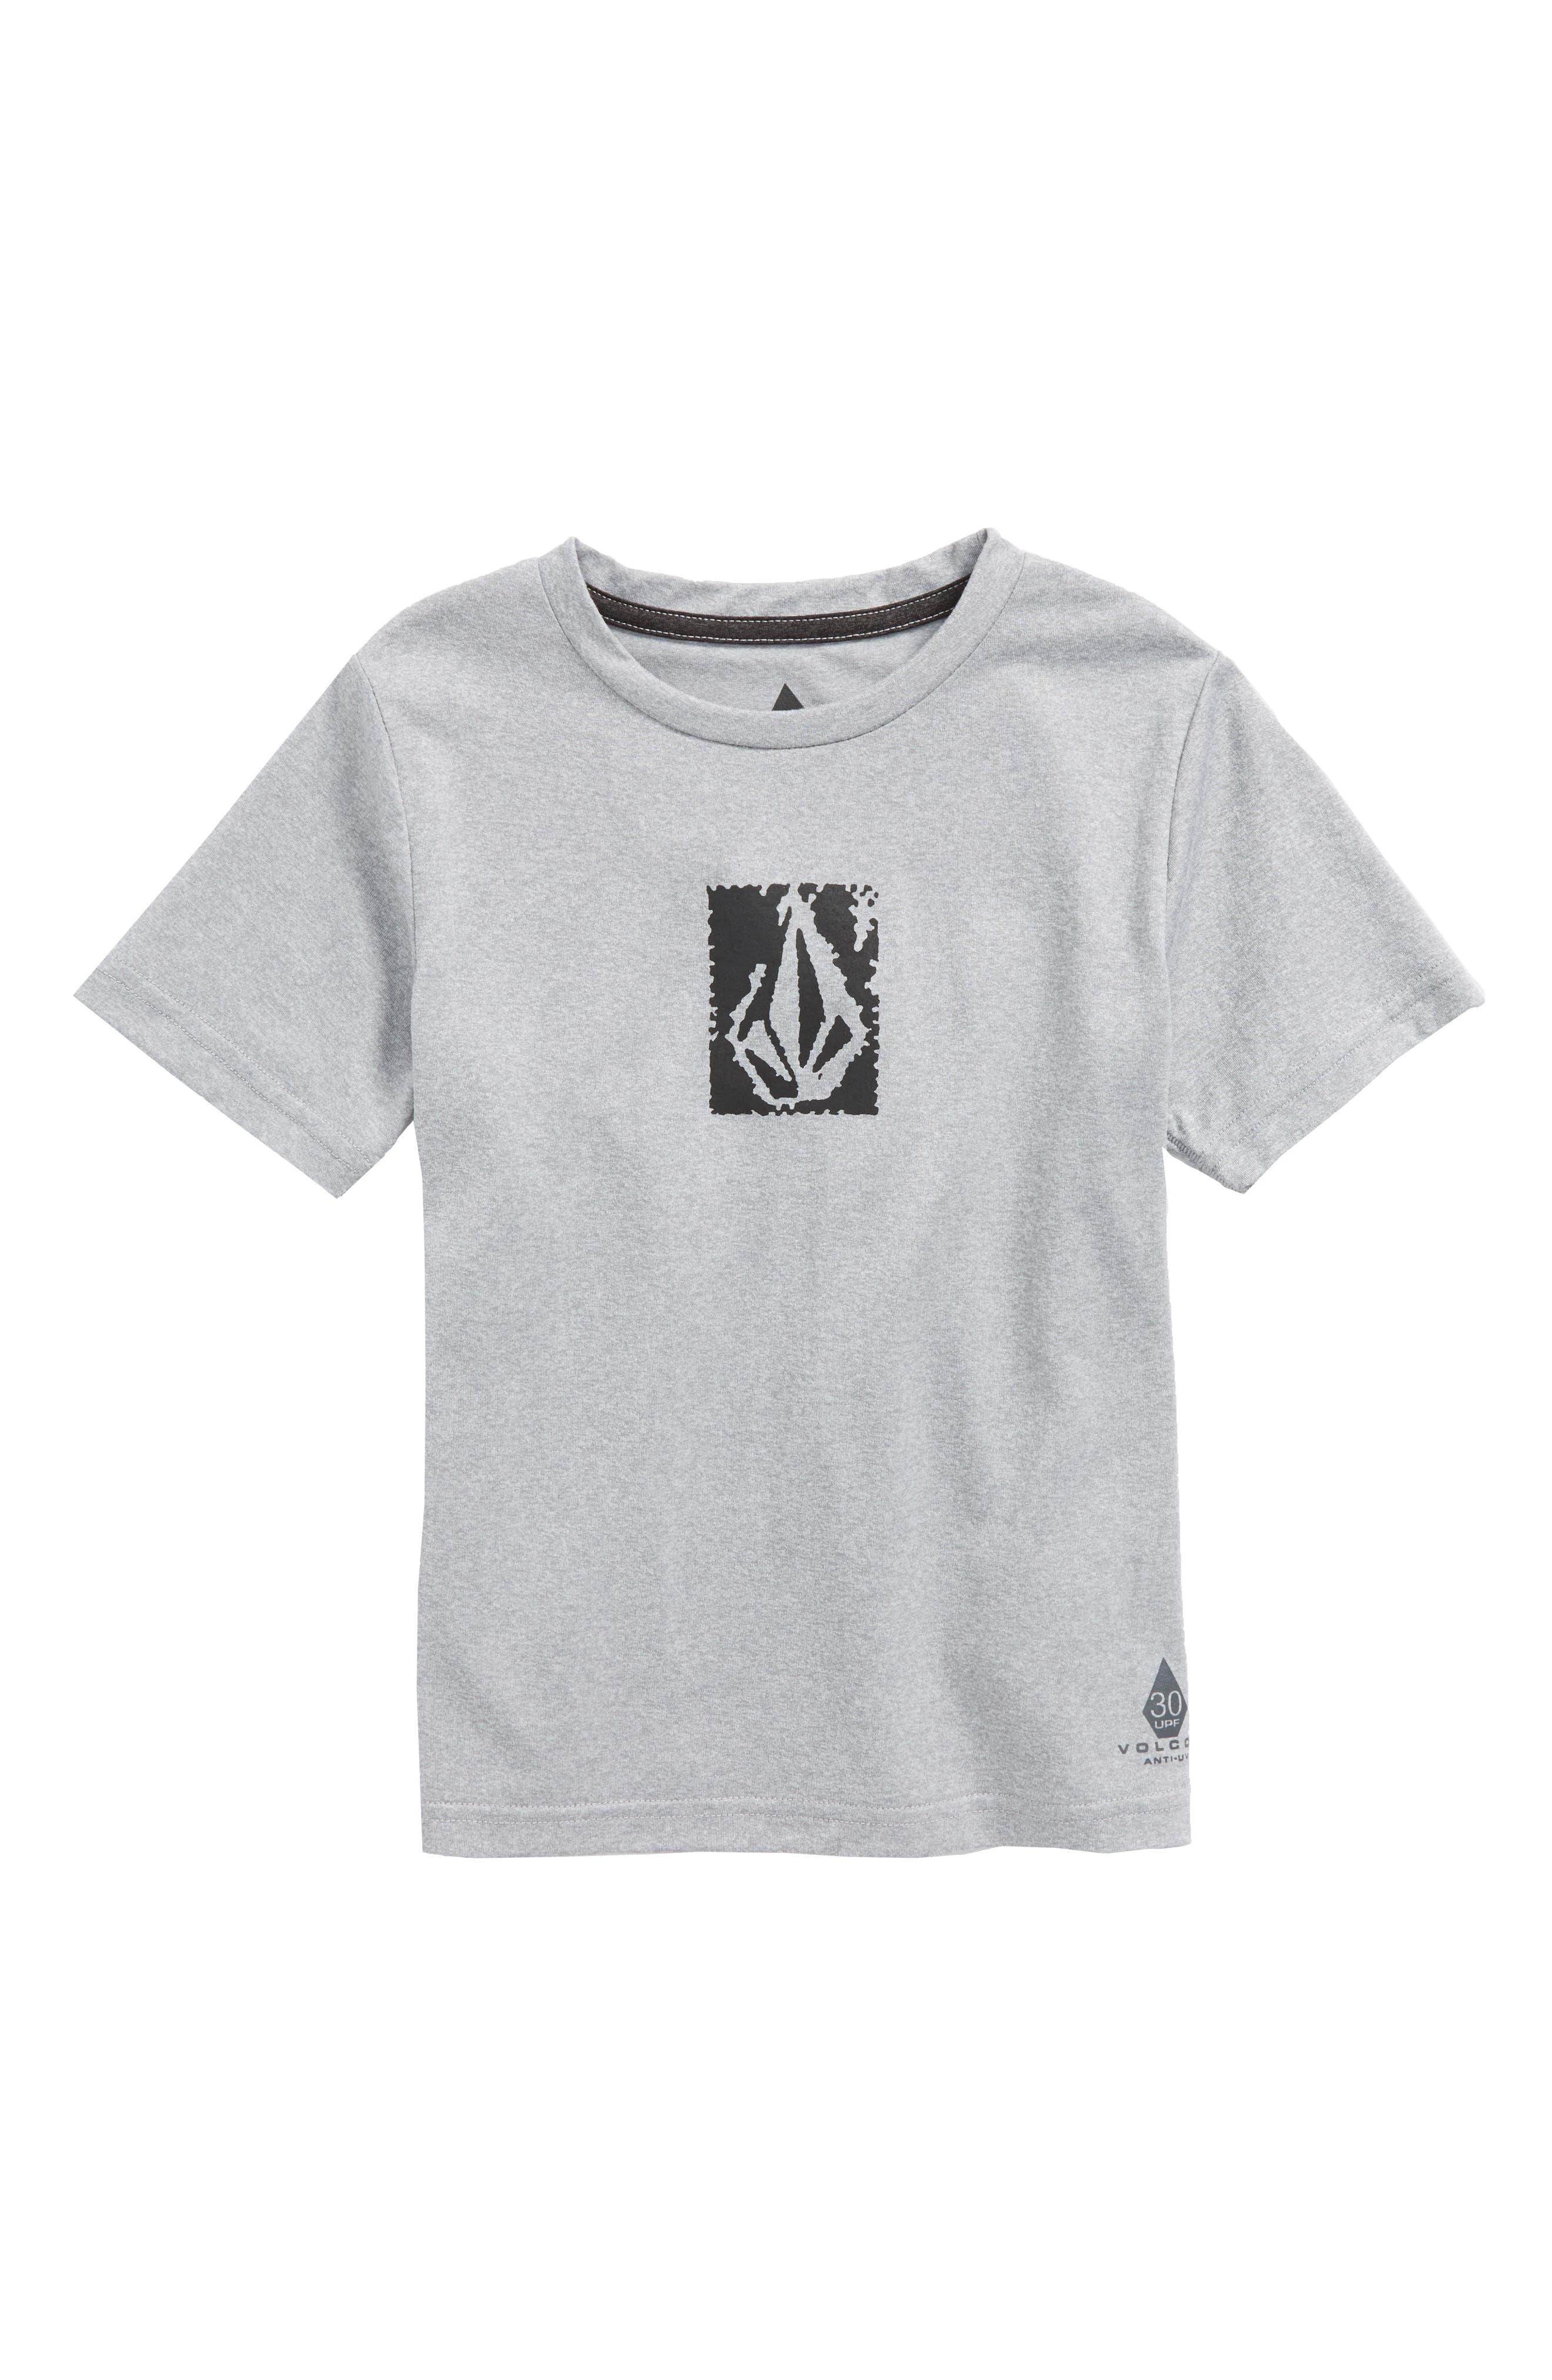 Lido Graphic Logo T-Shirt,                             Main thumbnail 1, color,                             020